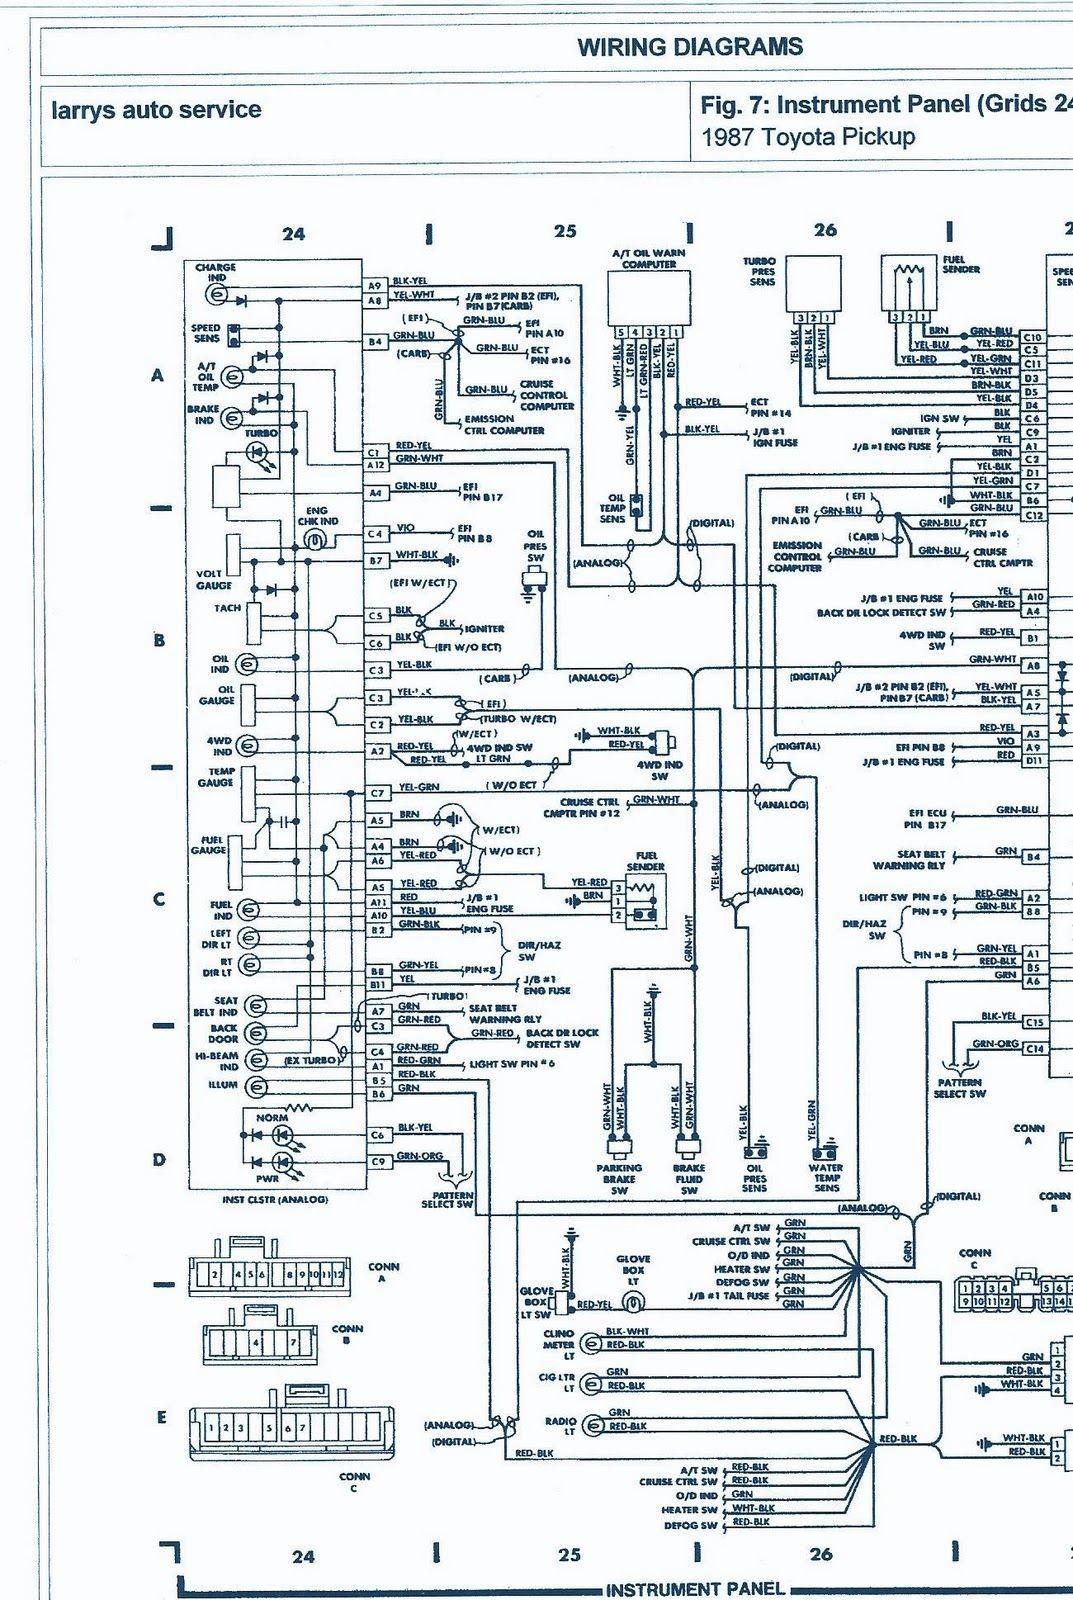 Wiring Diagram for 1993 toyota Pickup 1993 toyota Truck Electrical Wiring Diagram Of Wiring Diagram for 1993 toyota Pickup